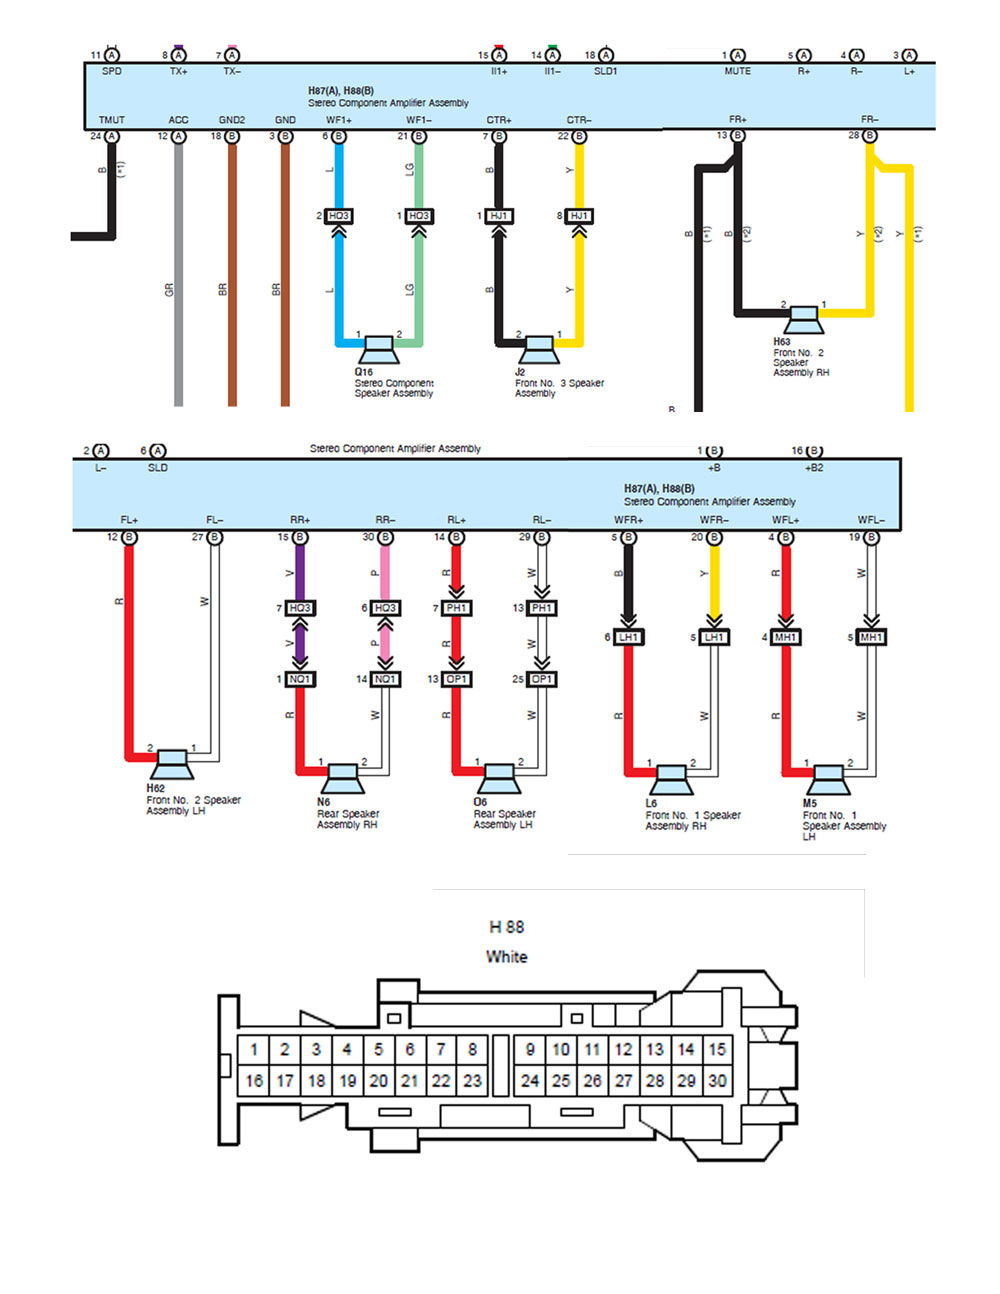 2001 lexus is300 speaker wiring diagram 2001 image stereo upgrade club lexus forums on 2001 lexus is300 speaker wiring diagram